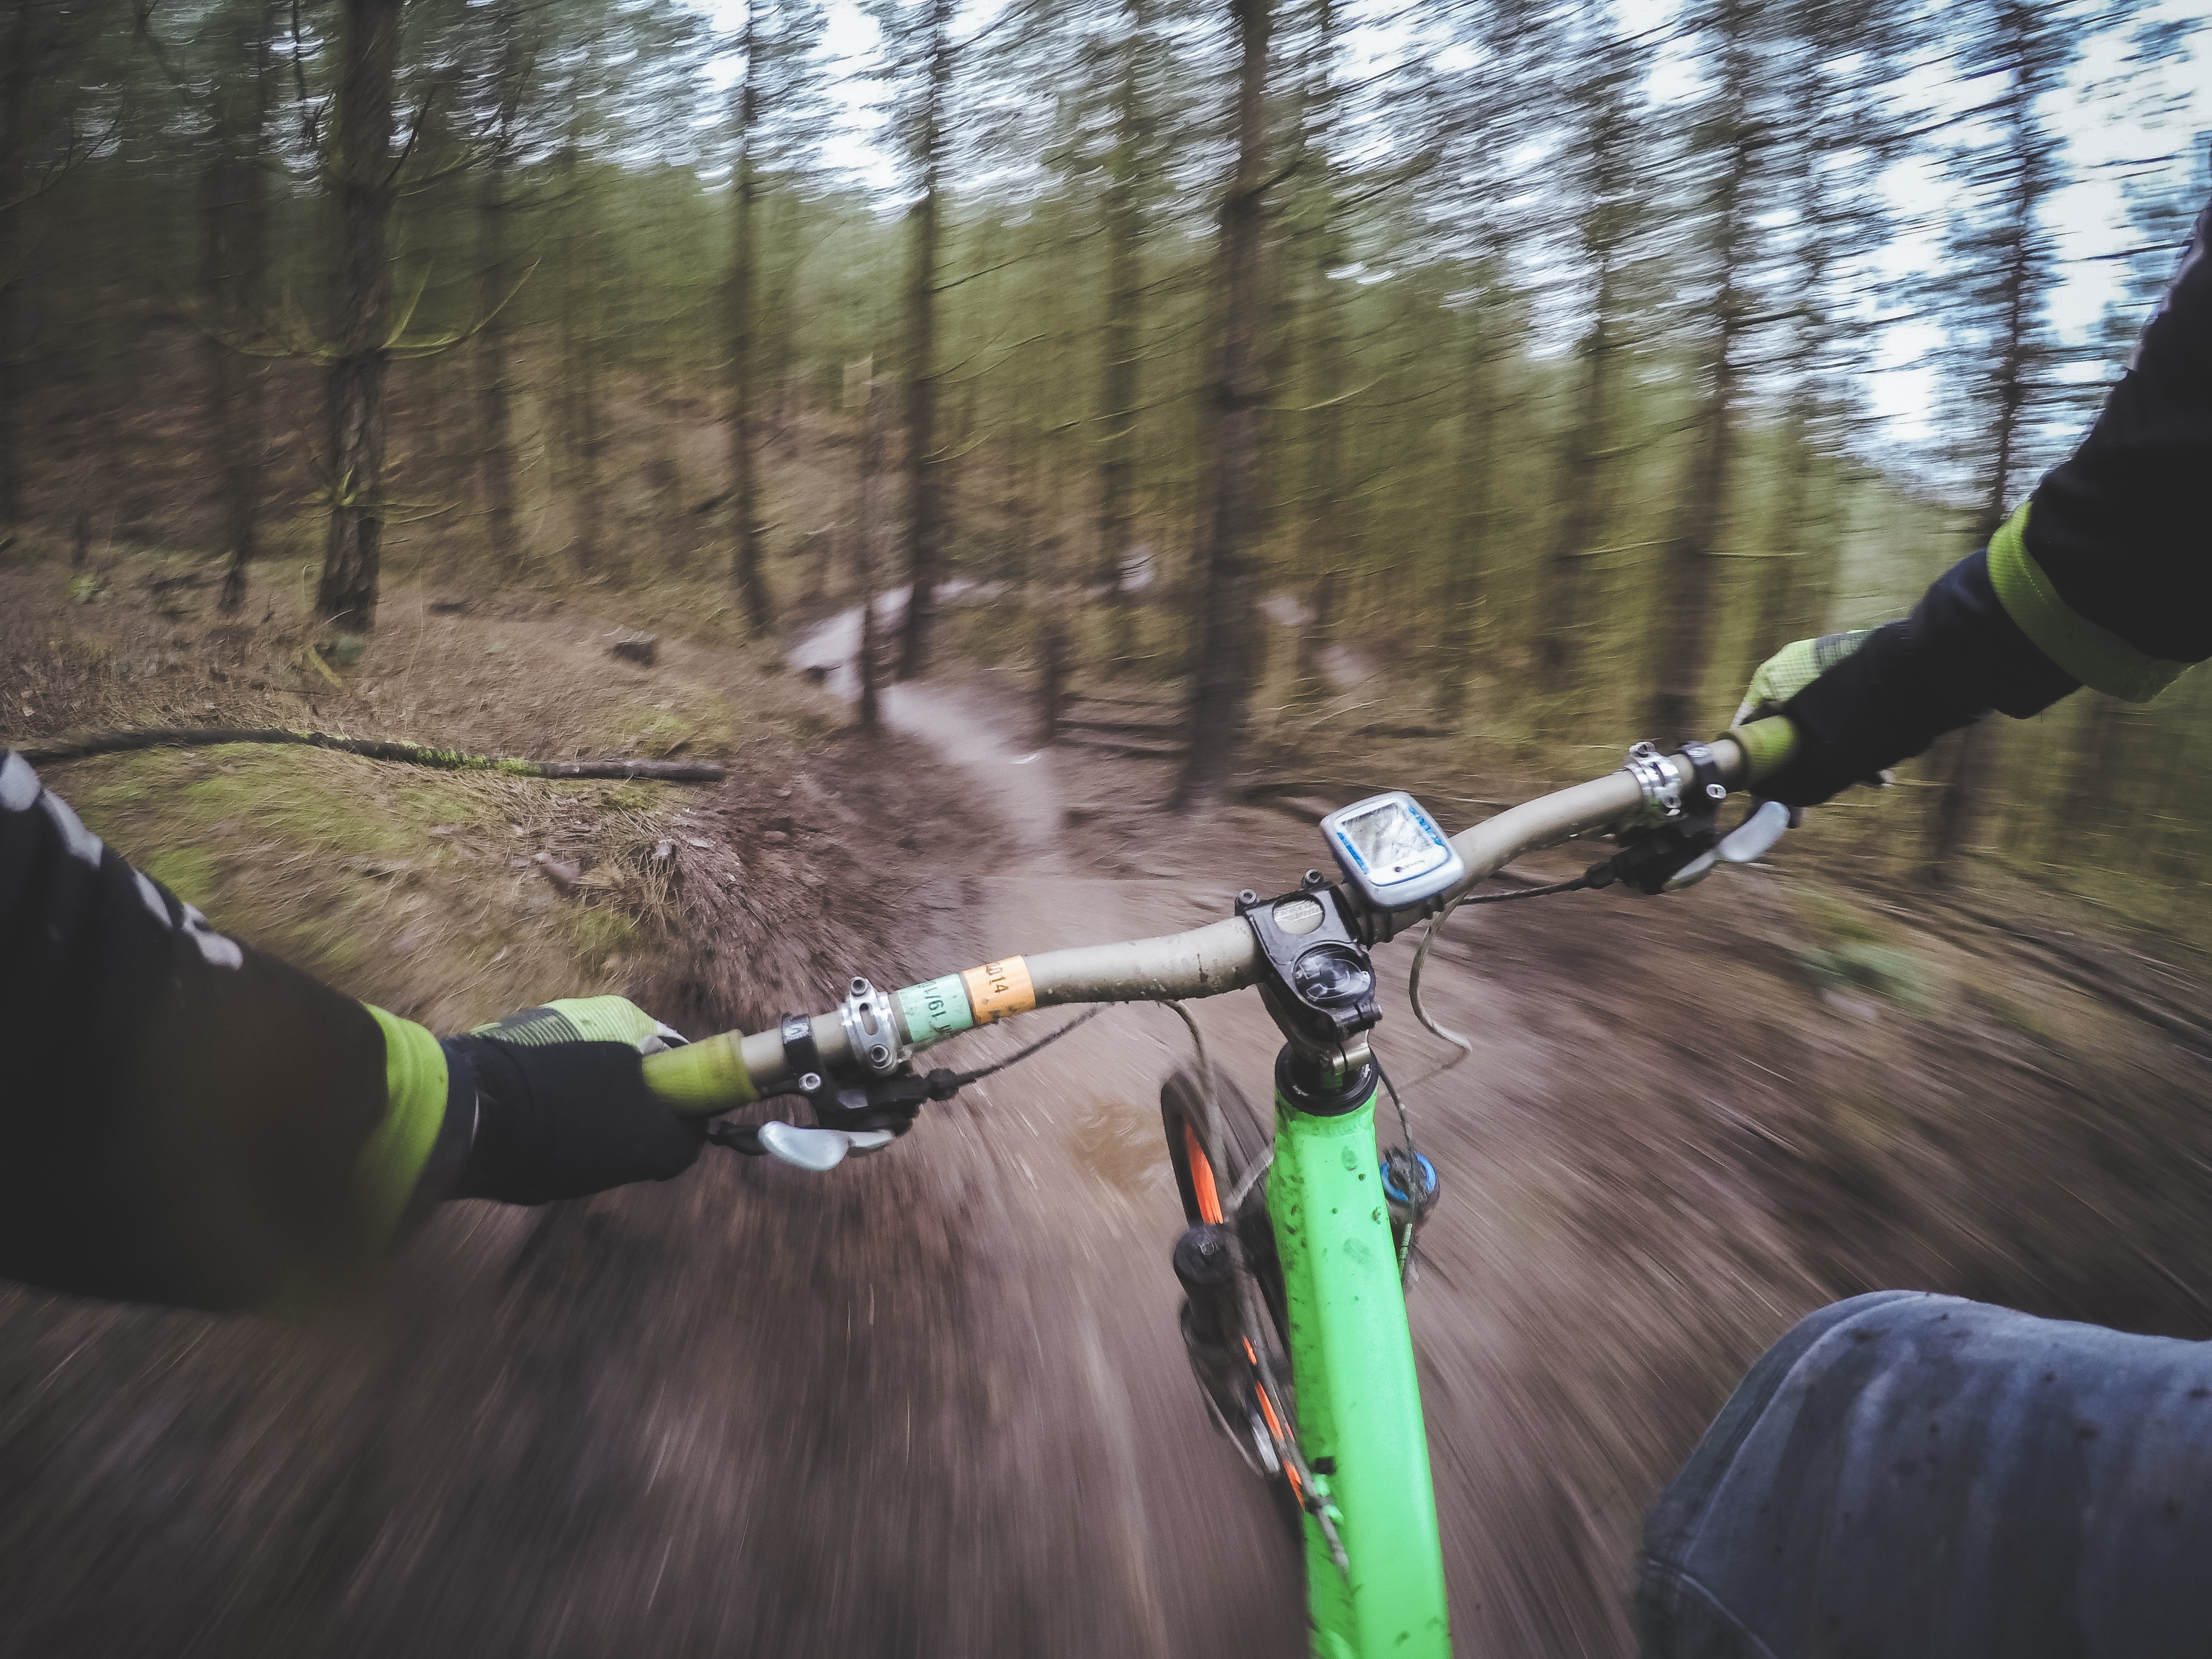 Green off road bicycle, dirt path.